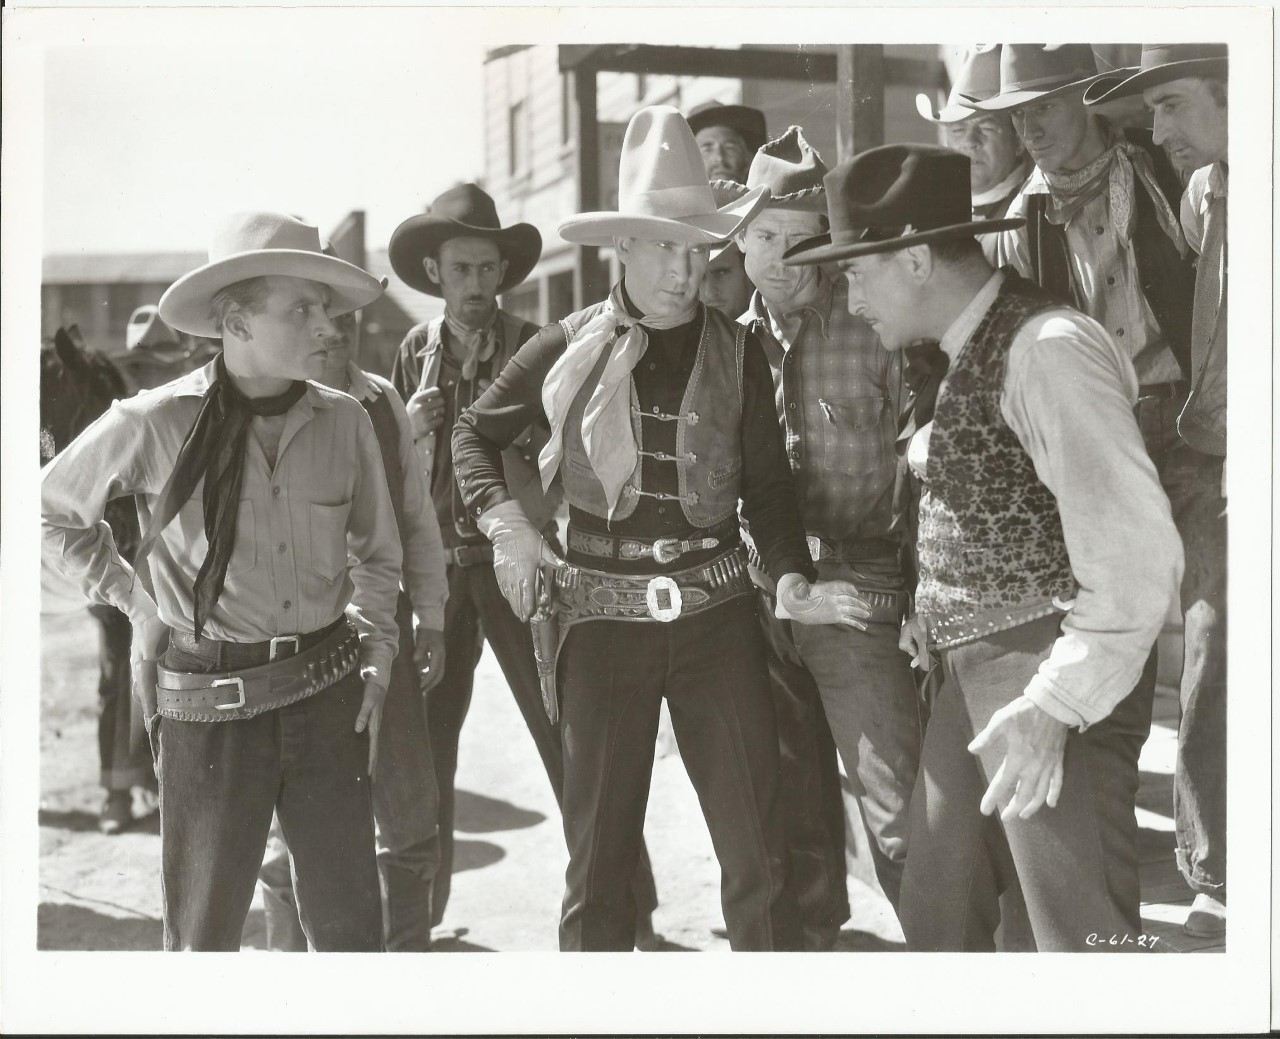 Tim McCoy, Chuck Baldra, Dwight Frye, and Wheeler Oakman in The Western Code (1932)